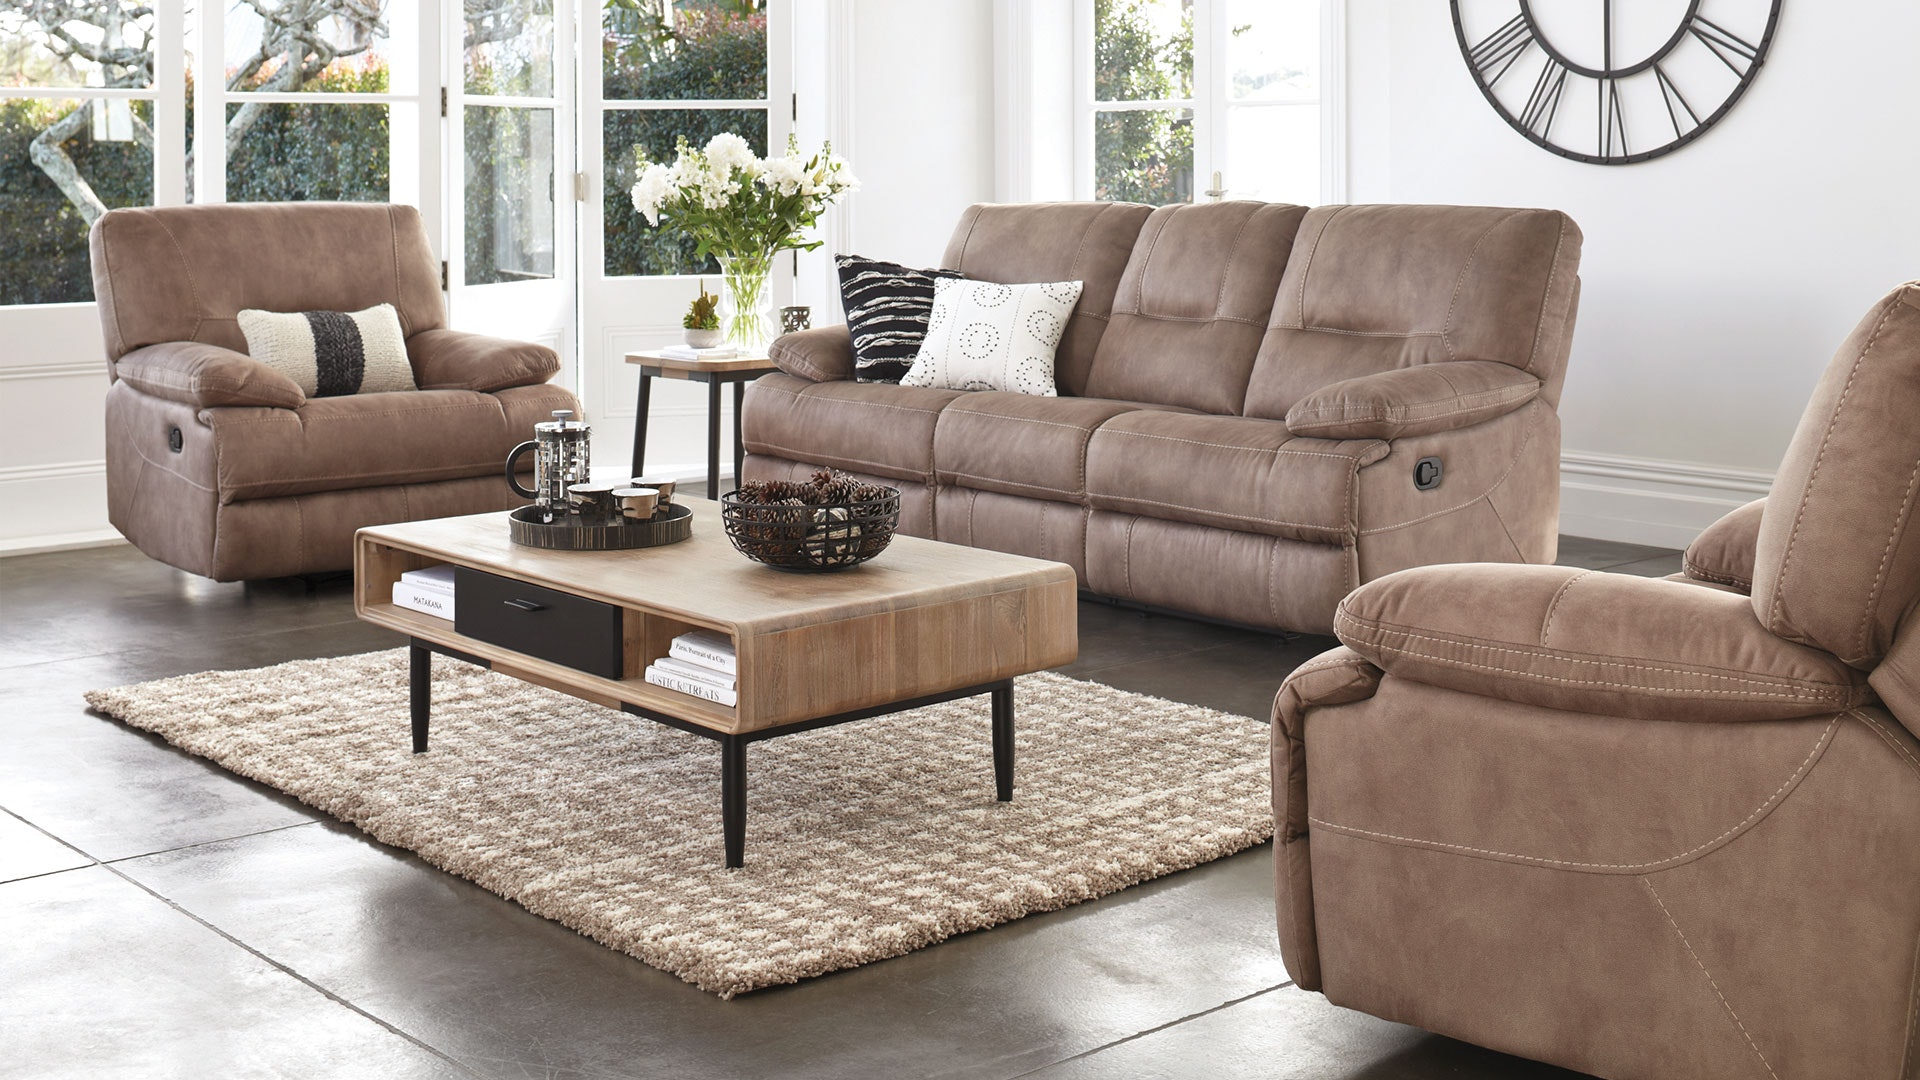 Dorset 3 Piece Fabric Recliner Lounge Suite ... & Dorset 3 Piece Fabric Recliner Lounge Suite | Harvey Norman New ... islam-shia.org